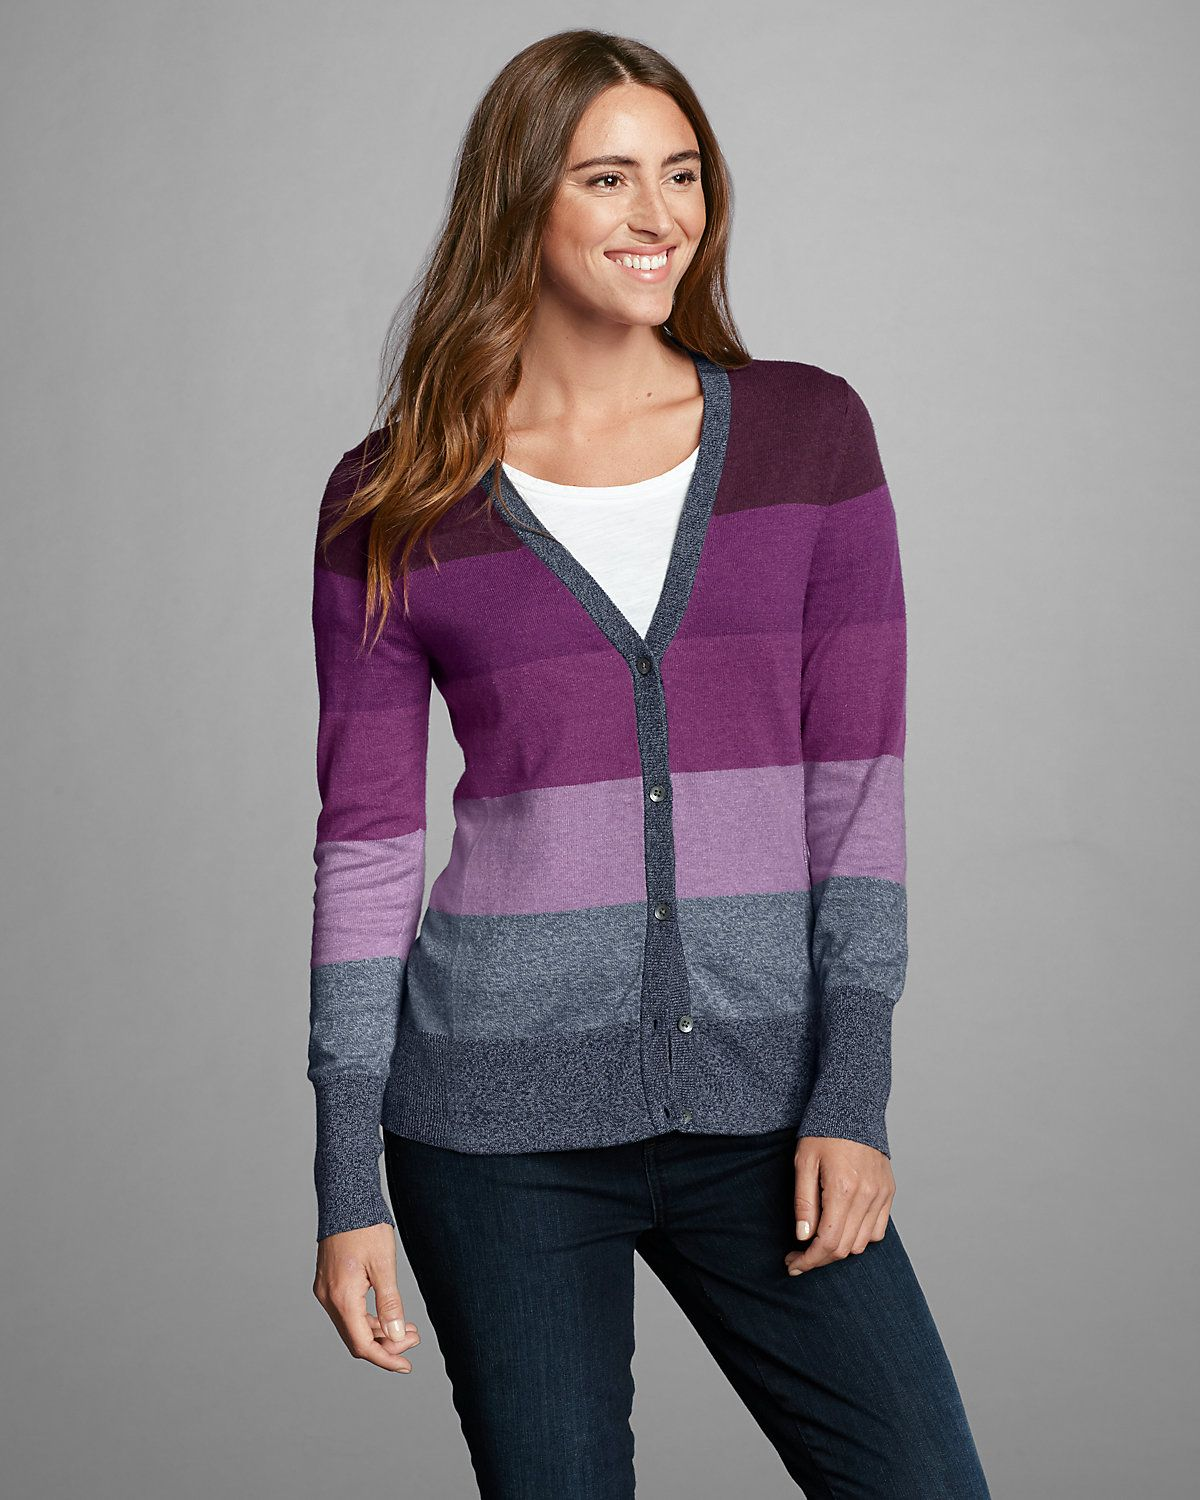 Women's Christine V-neck Cardigan Sweater - Stripe | Eddie Bauer ...